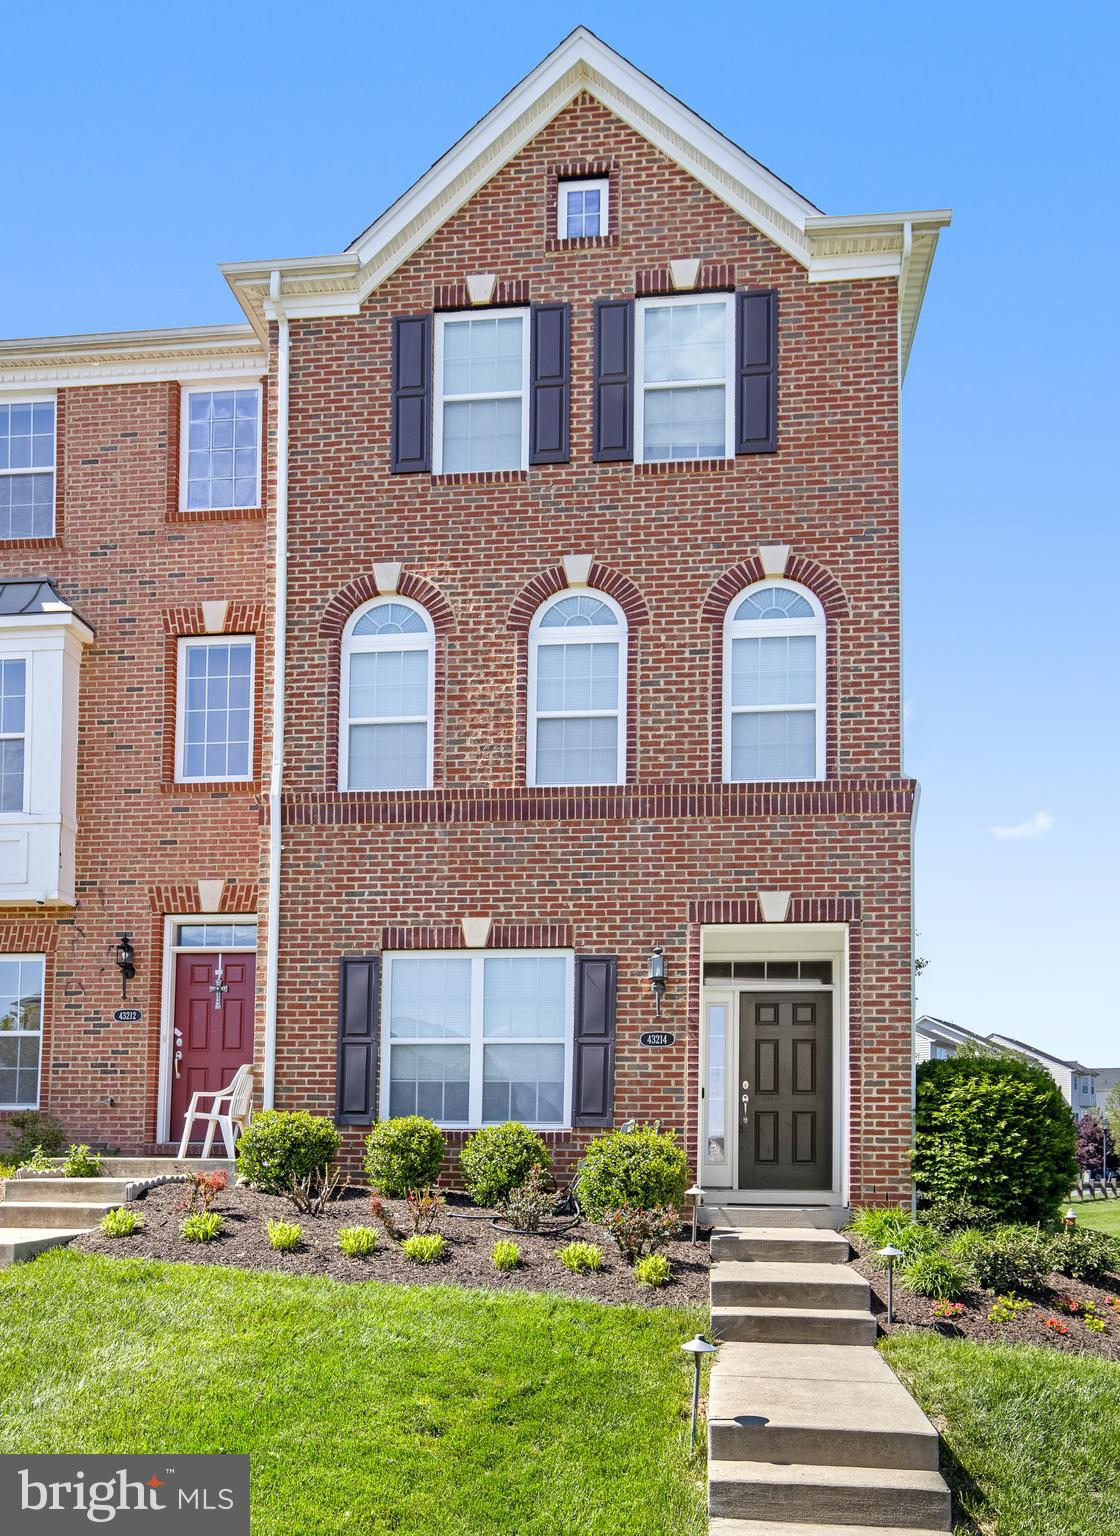 Welcome to this beautiful brick-front end unit featuring 4 bedrooms 3.5 baths located in Loudoun Val